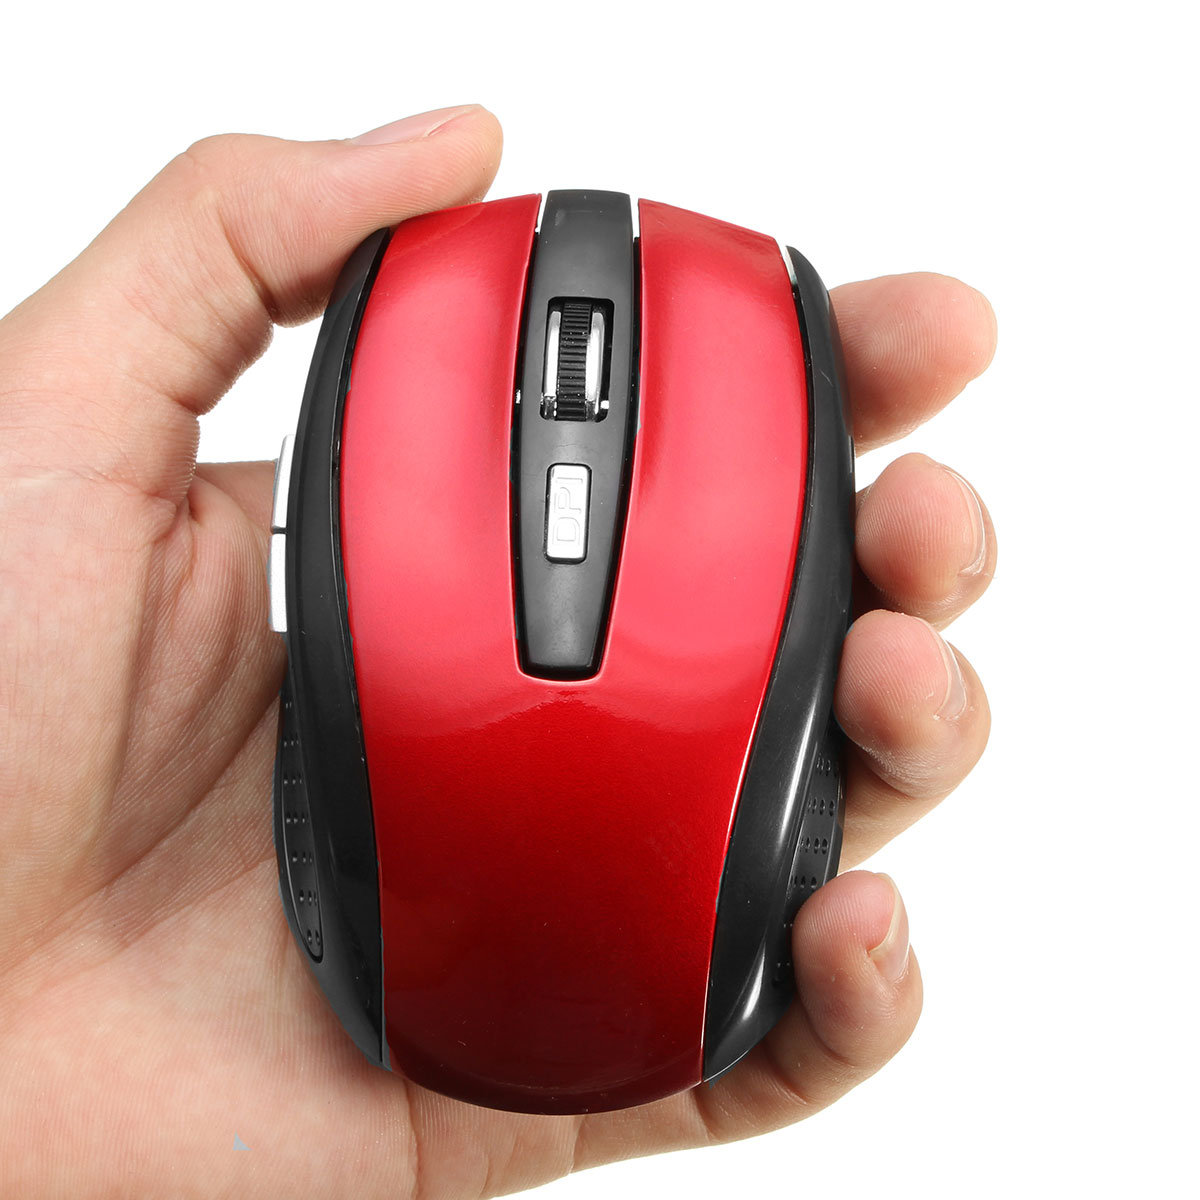 Slim 2.4GHz Wireless Mouse Wireless Optical Mouse Cordless Mice USB 2.0 Receiver For Laptop PC